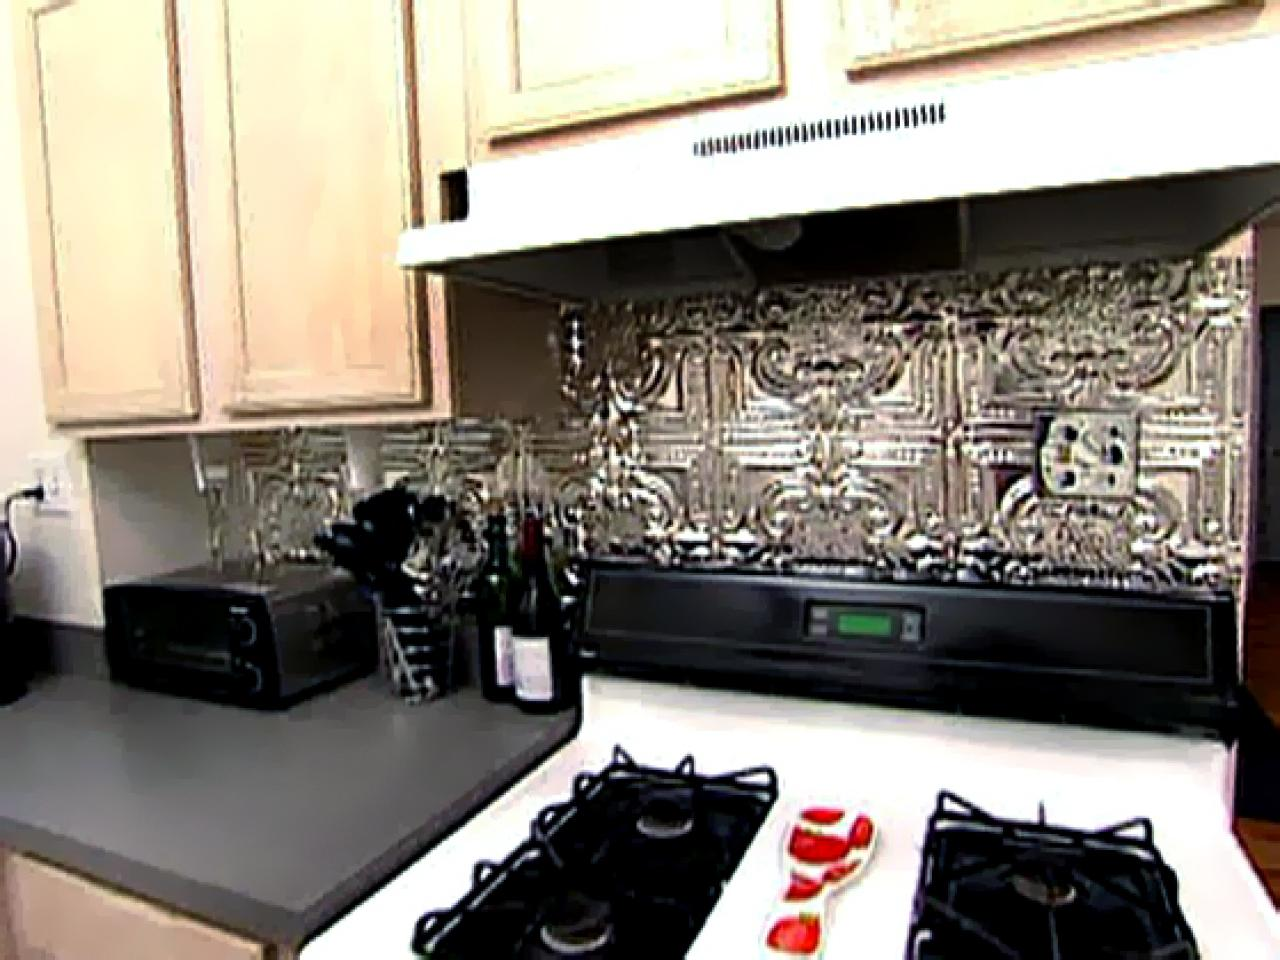 Weekend Projects: How to Install a Tin Tile Backsplash - Weekend Projects: How To Install A Tin Tile Backsplash HGTV